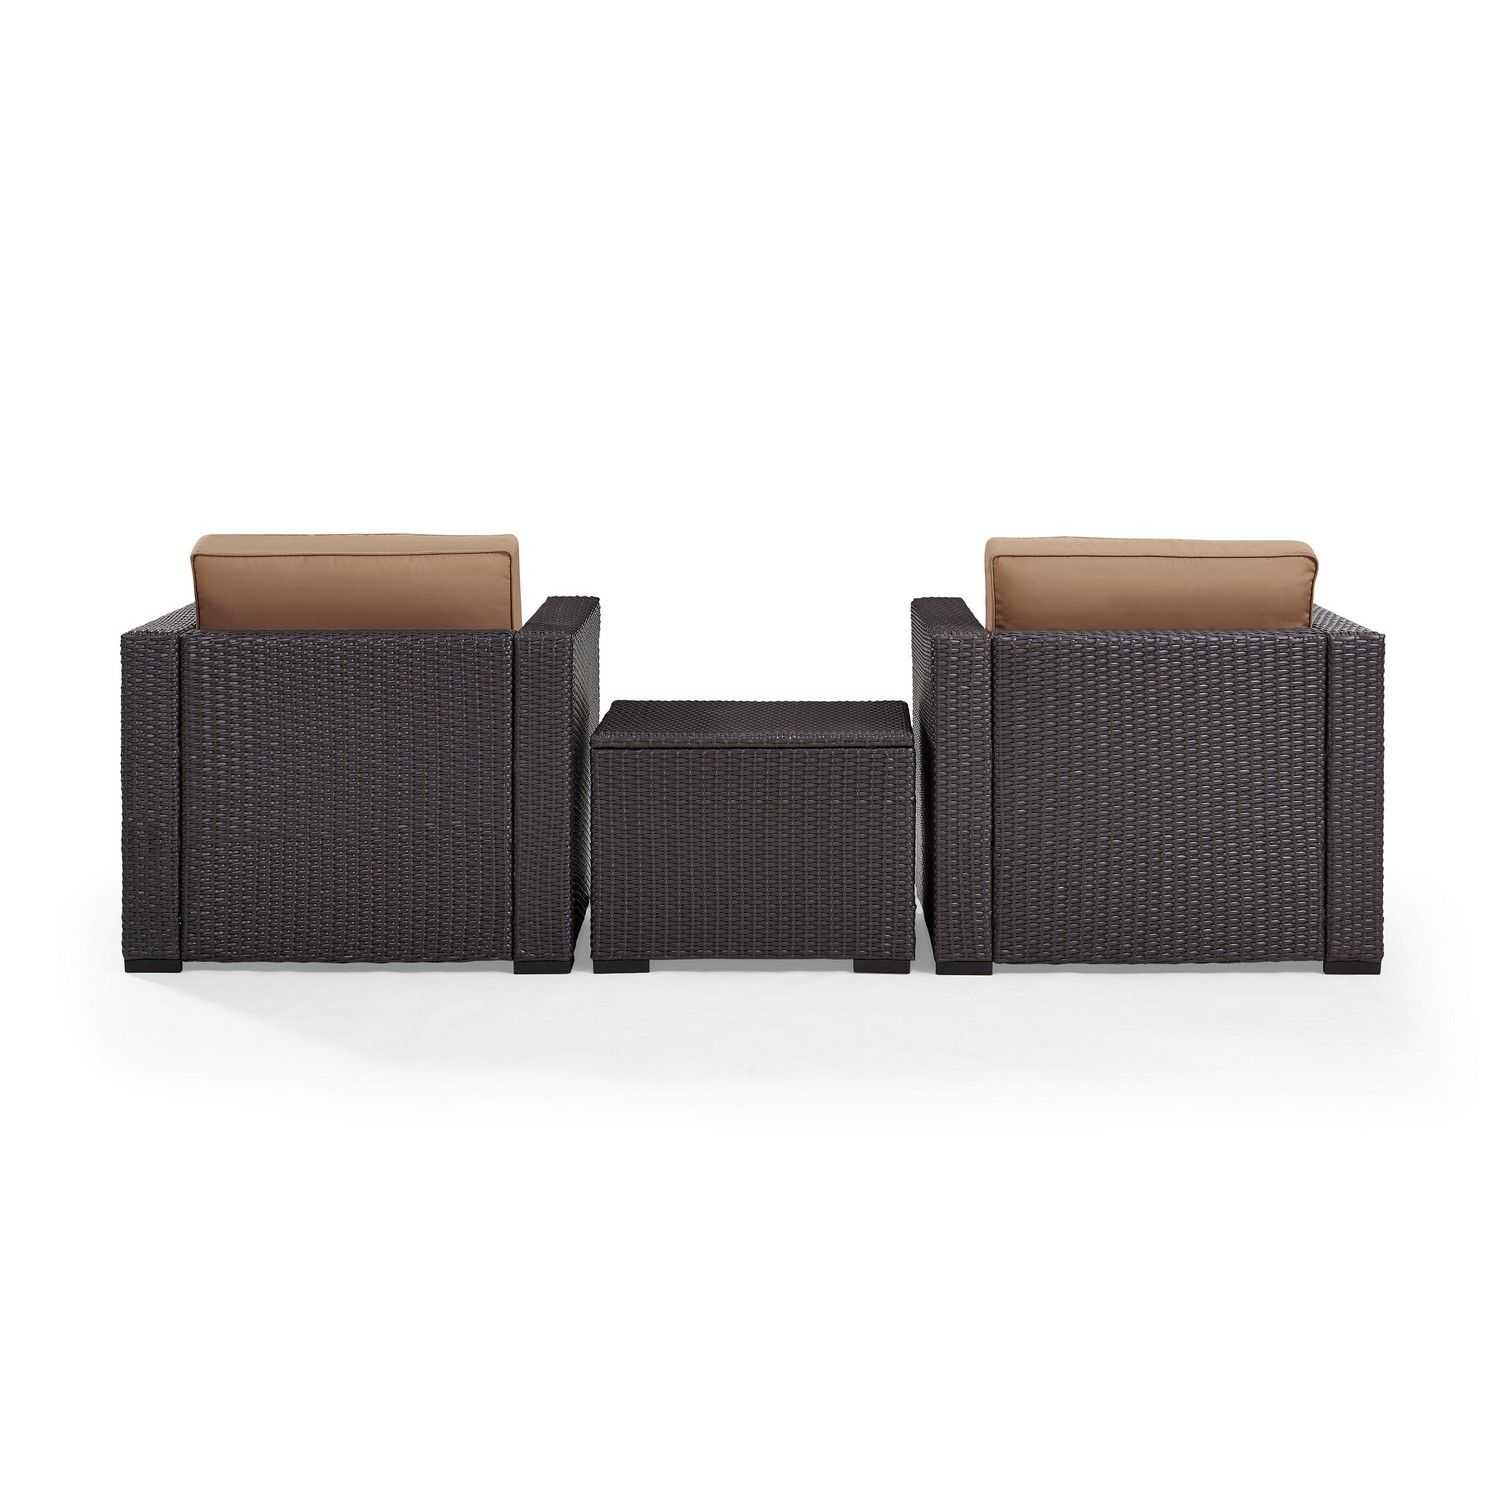 Crosley Biscayne 3-PC Outdoor Wicker Chair Set - Coffee Table and 2 Chairs - Mocha/Brown